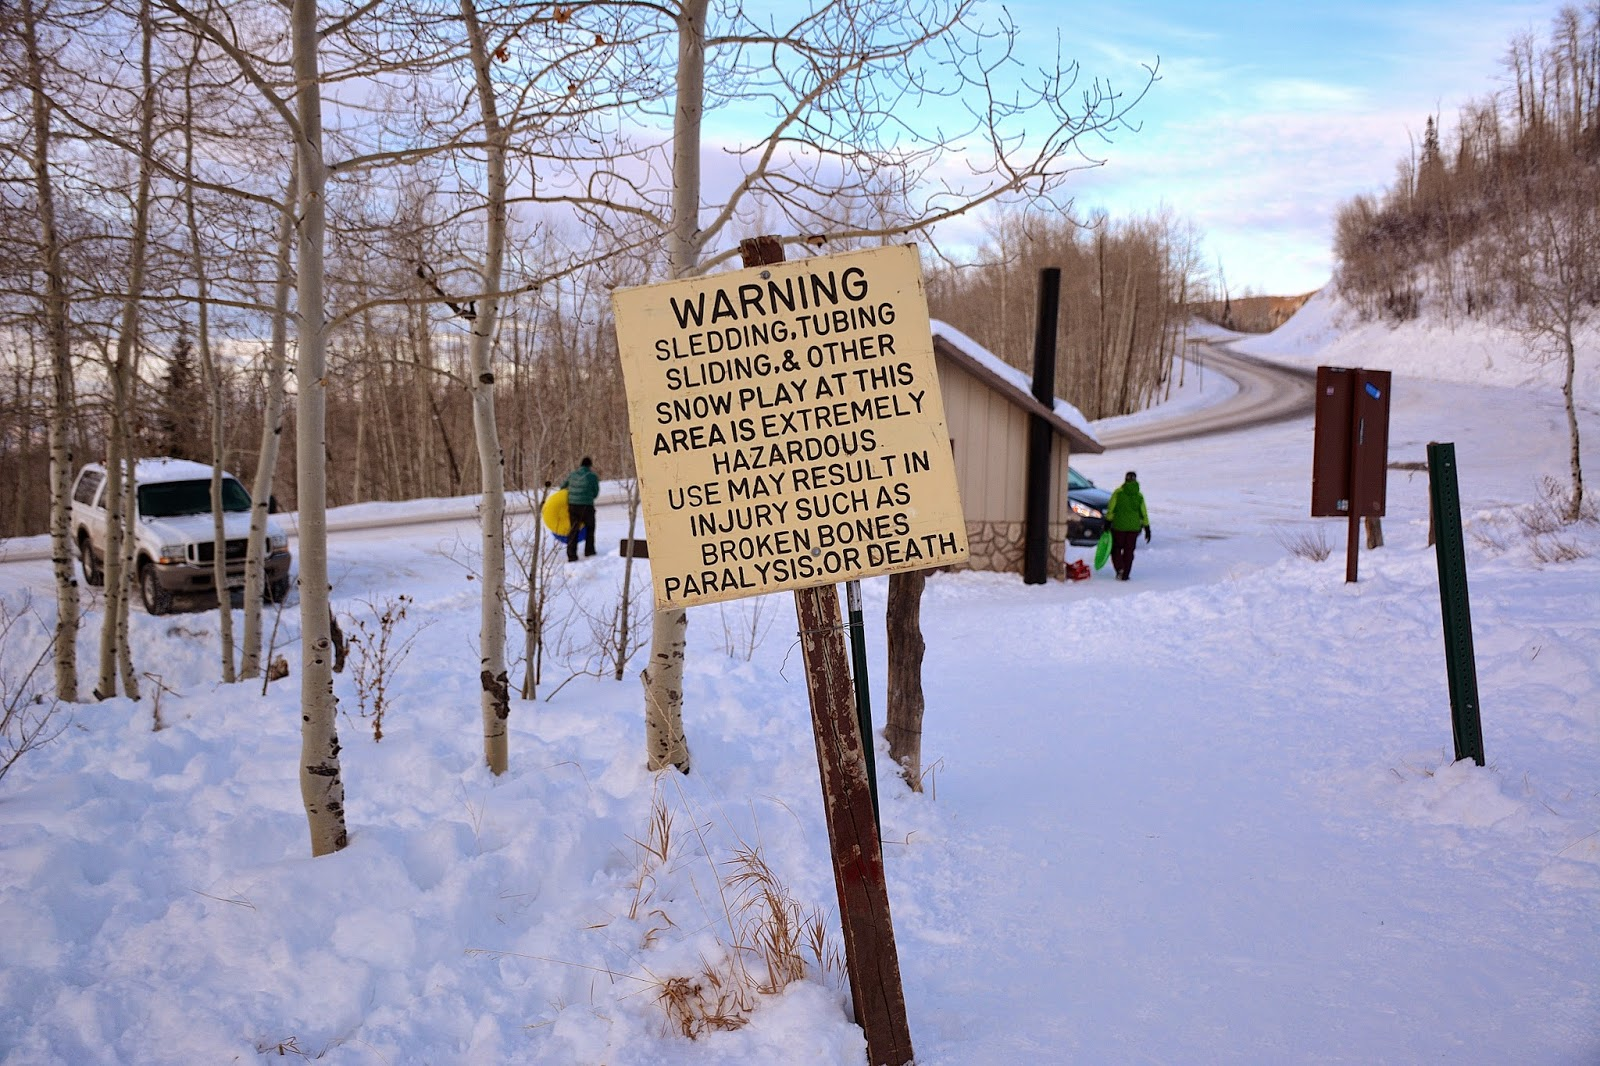 Warning sign for sledding